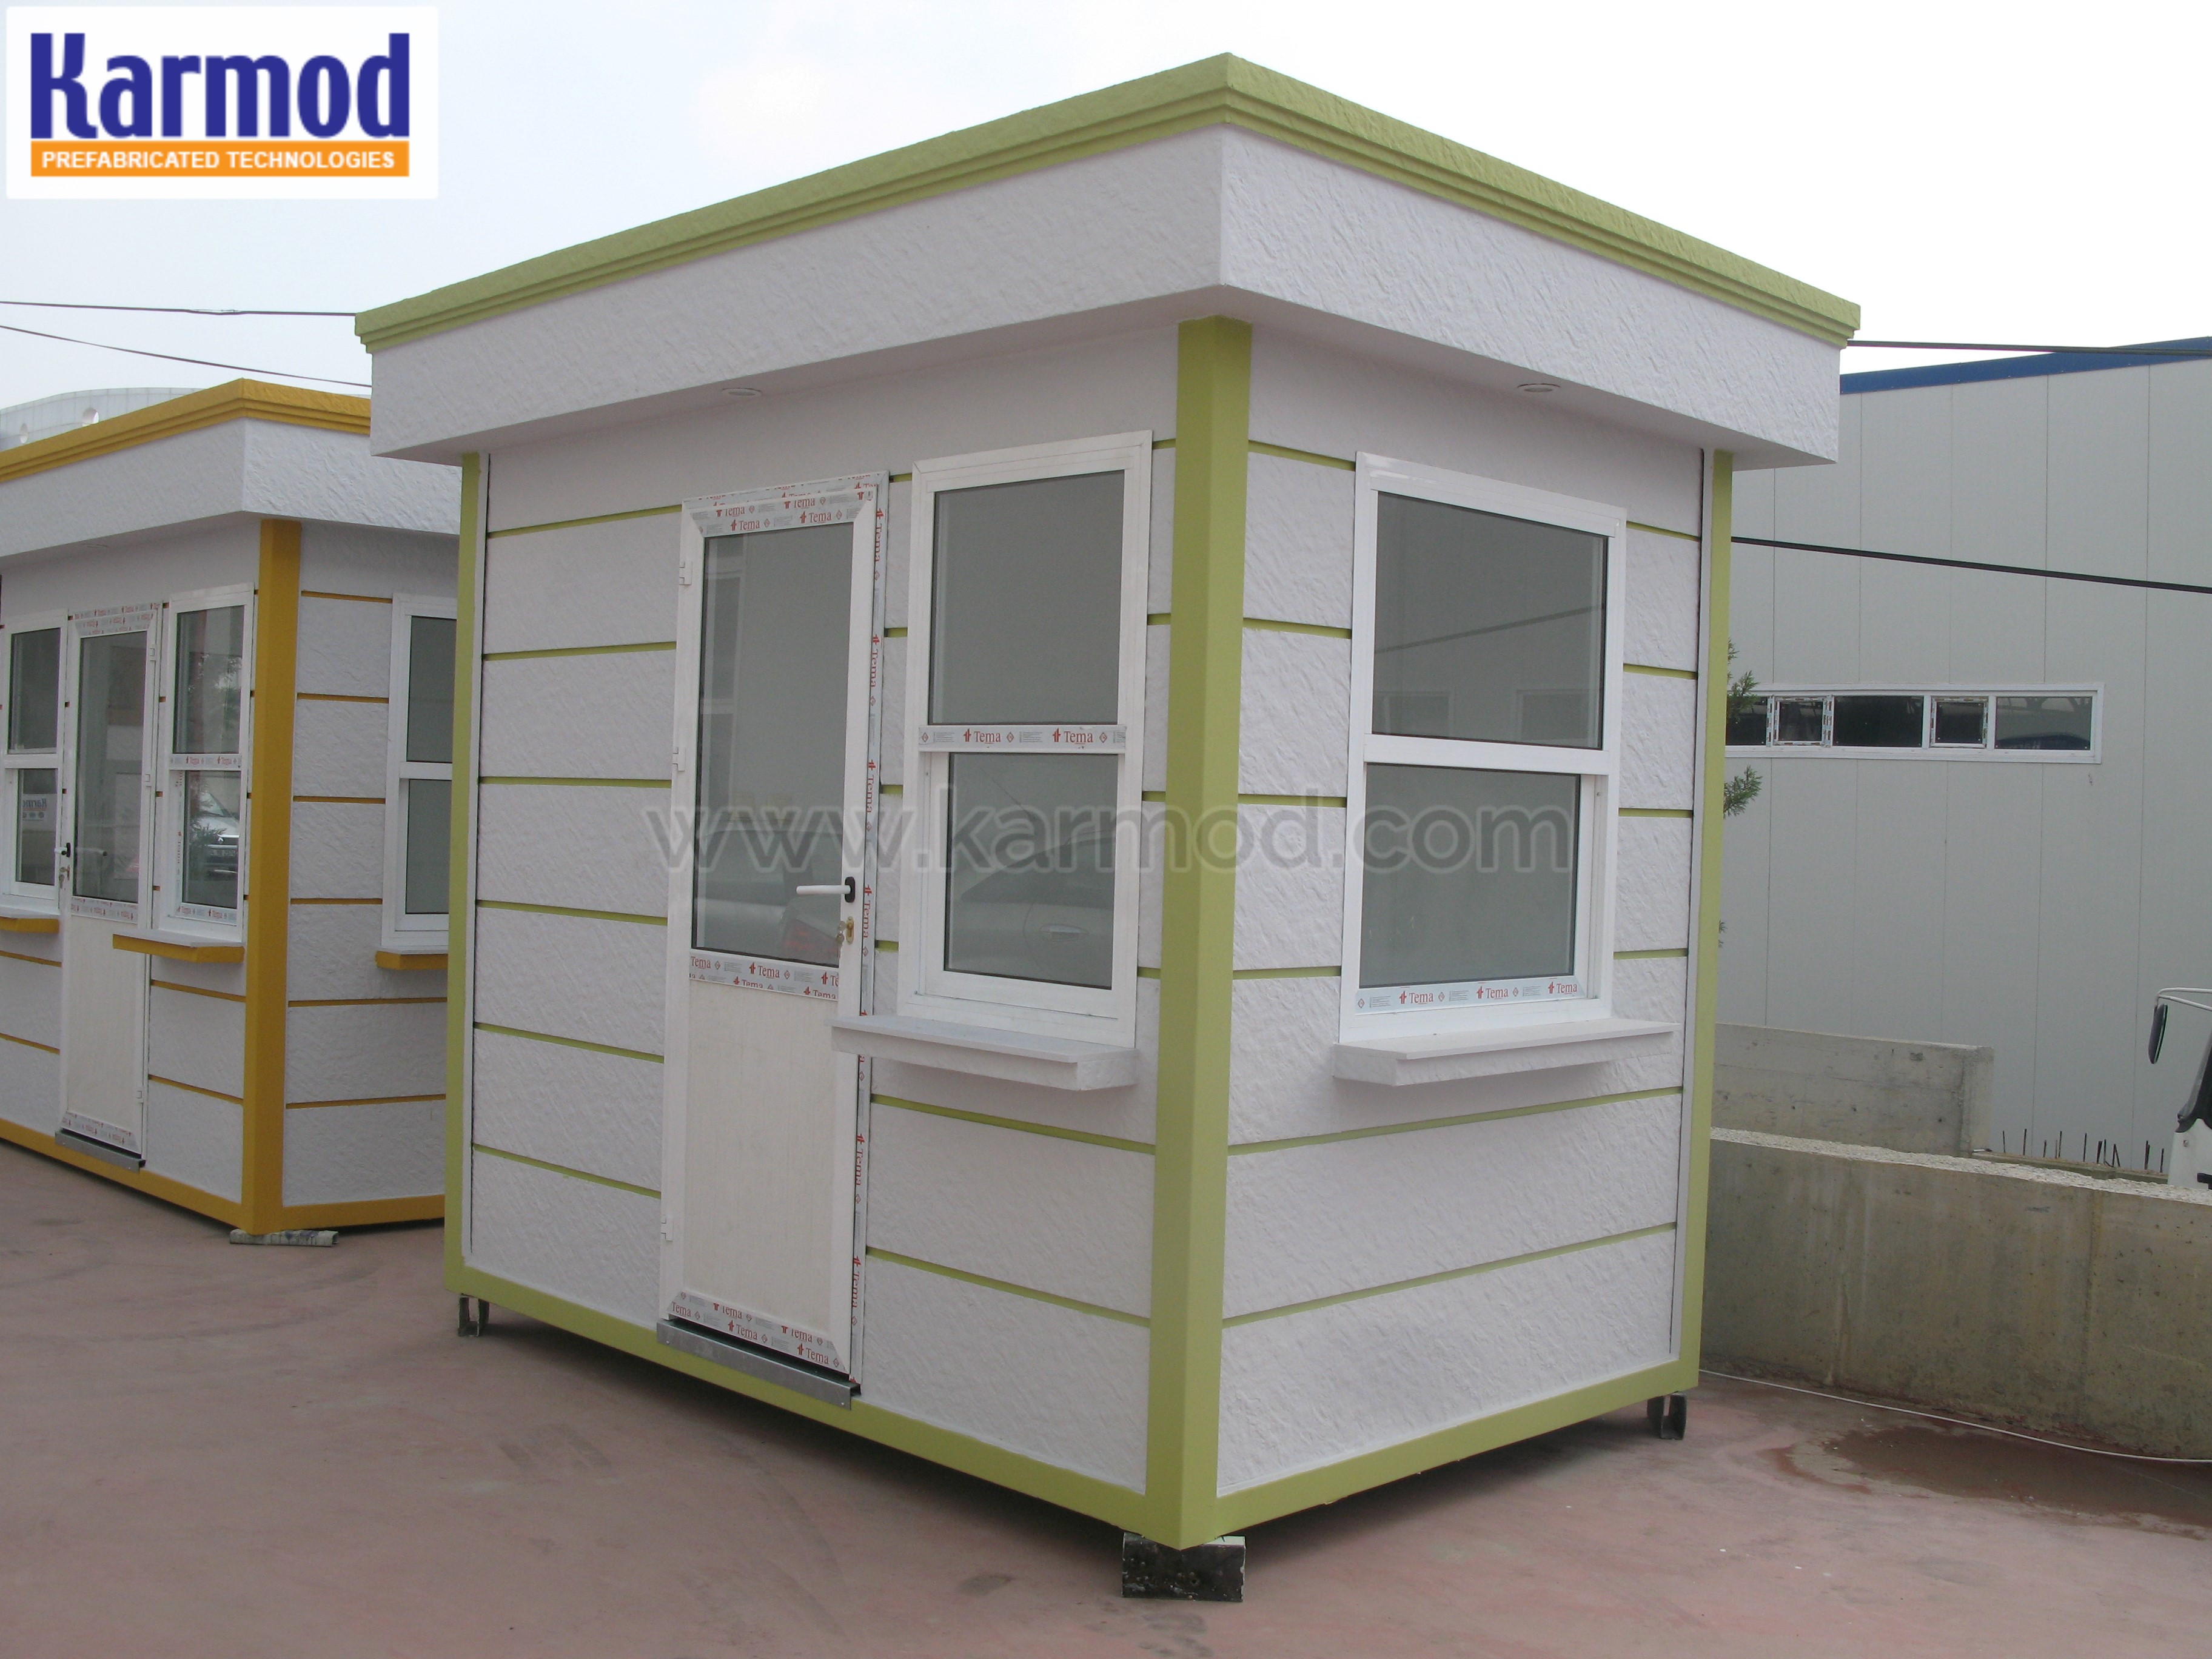 Valet guard Booths